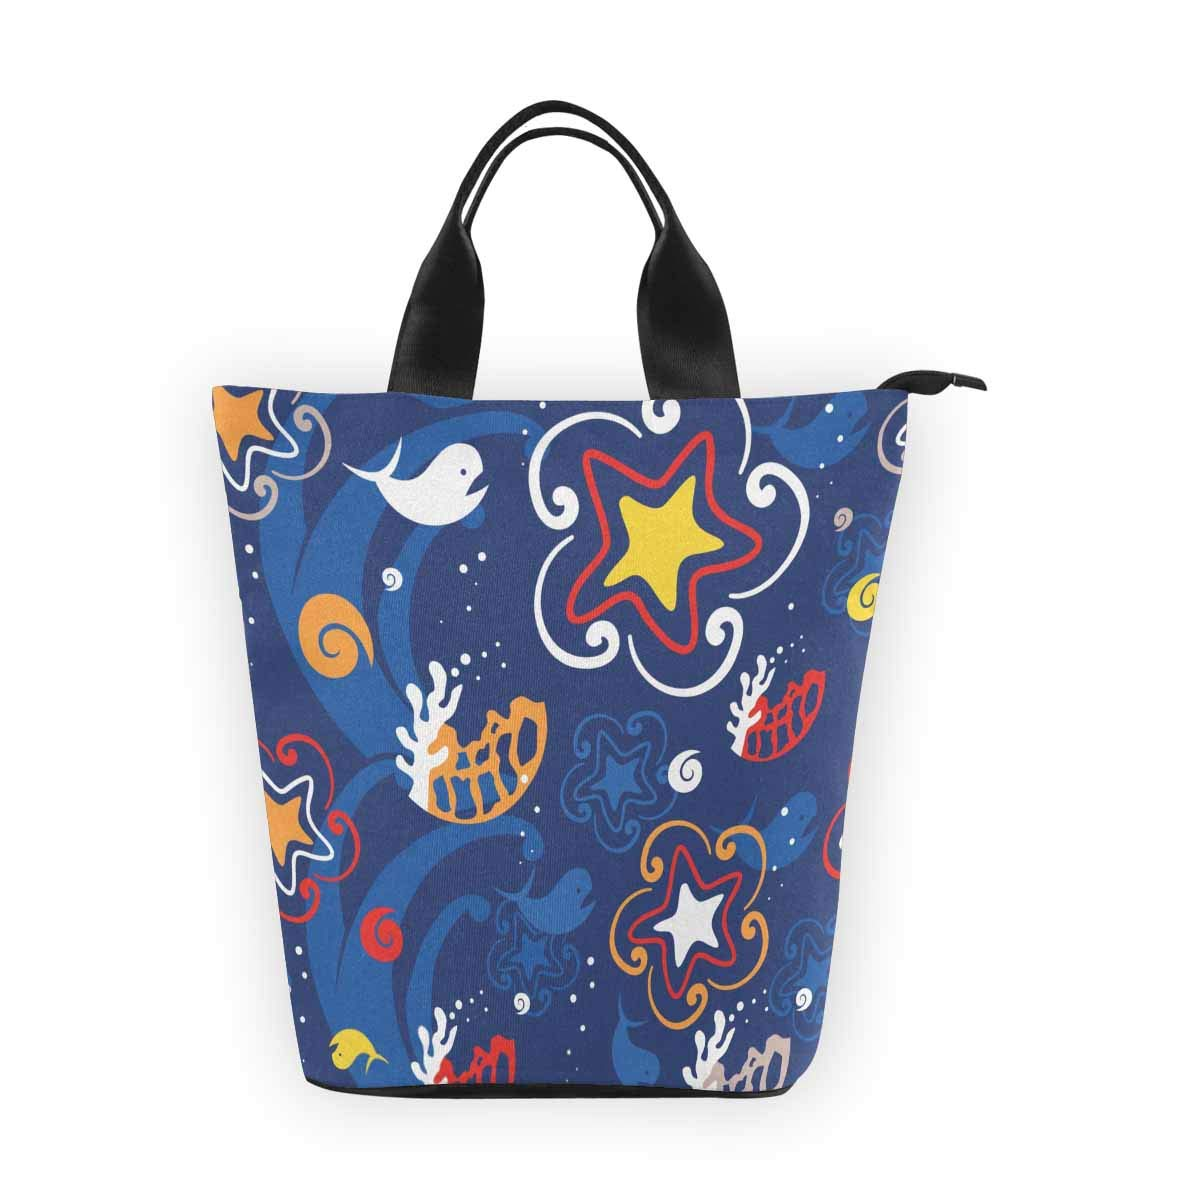 InterestPrint Nylon Cylinder Lunch Bag Sea Animals Whale Reusable Large Lunchbox Grocery Bag